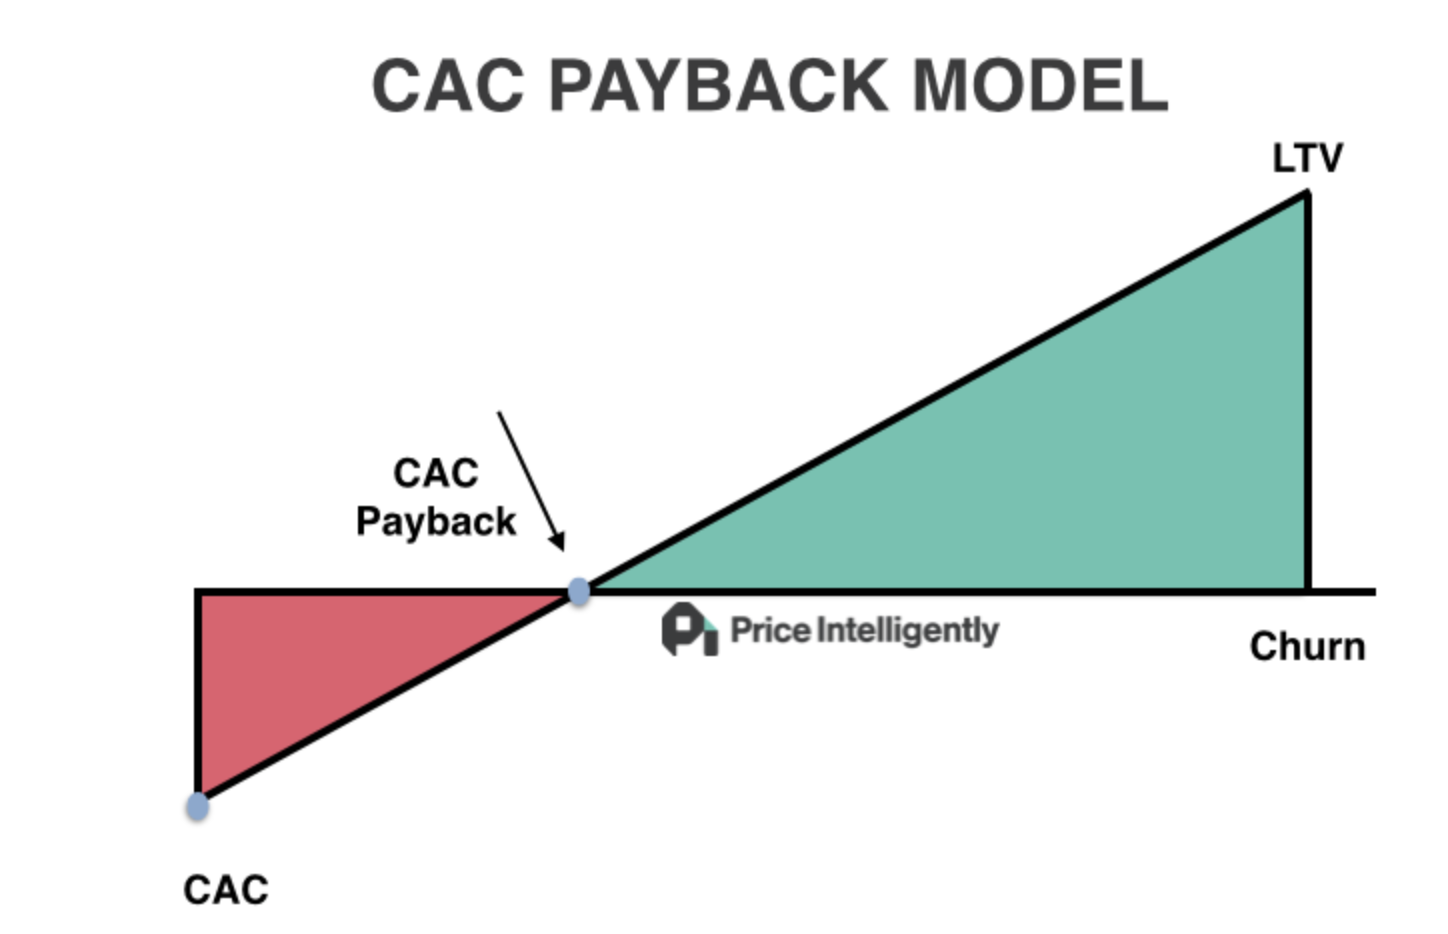 an image saying that early-staged SaaS businesses often have CAC much higher than monthly revenue generated by acquired customers. It takes quite a while to get back those investments and hit a break-even point.